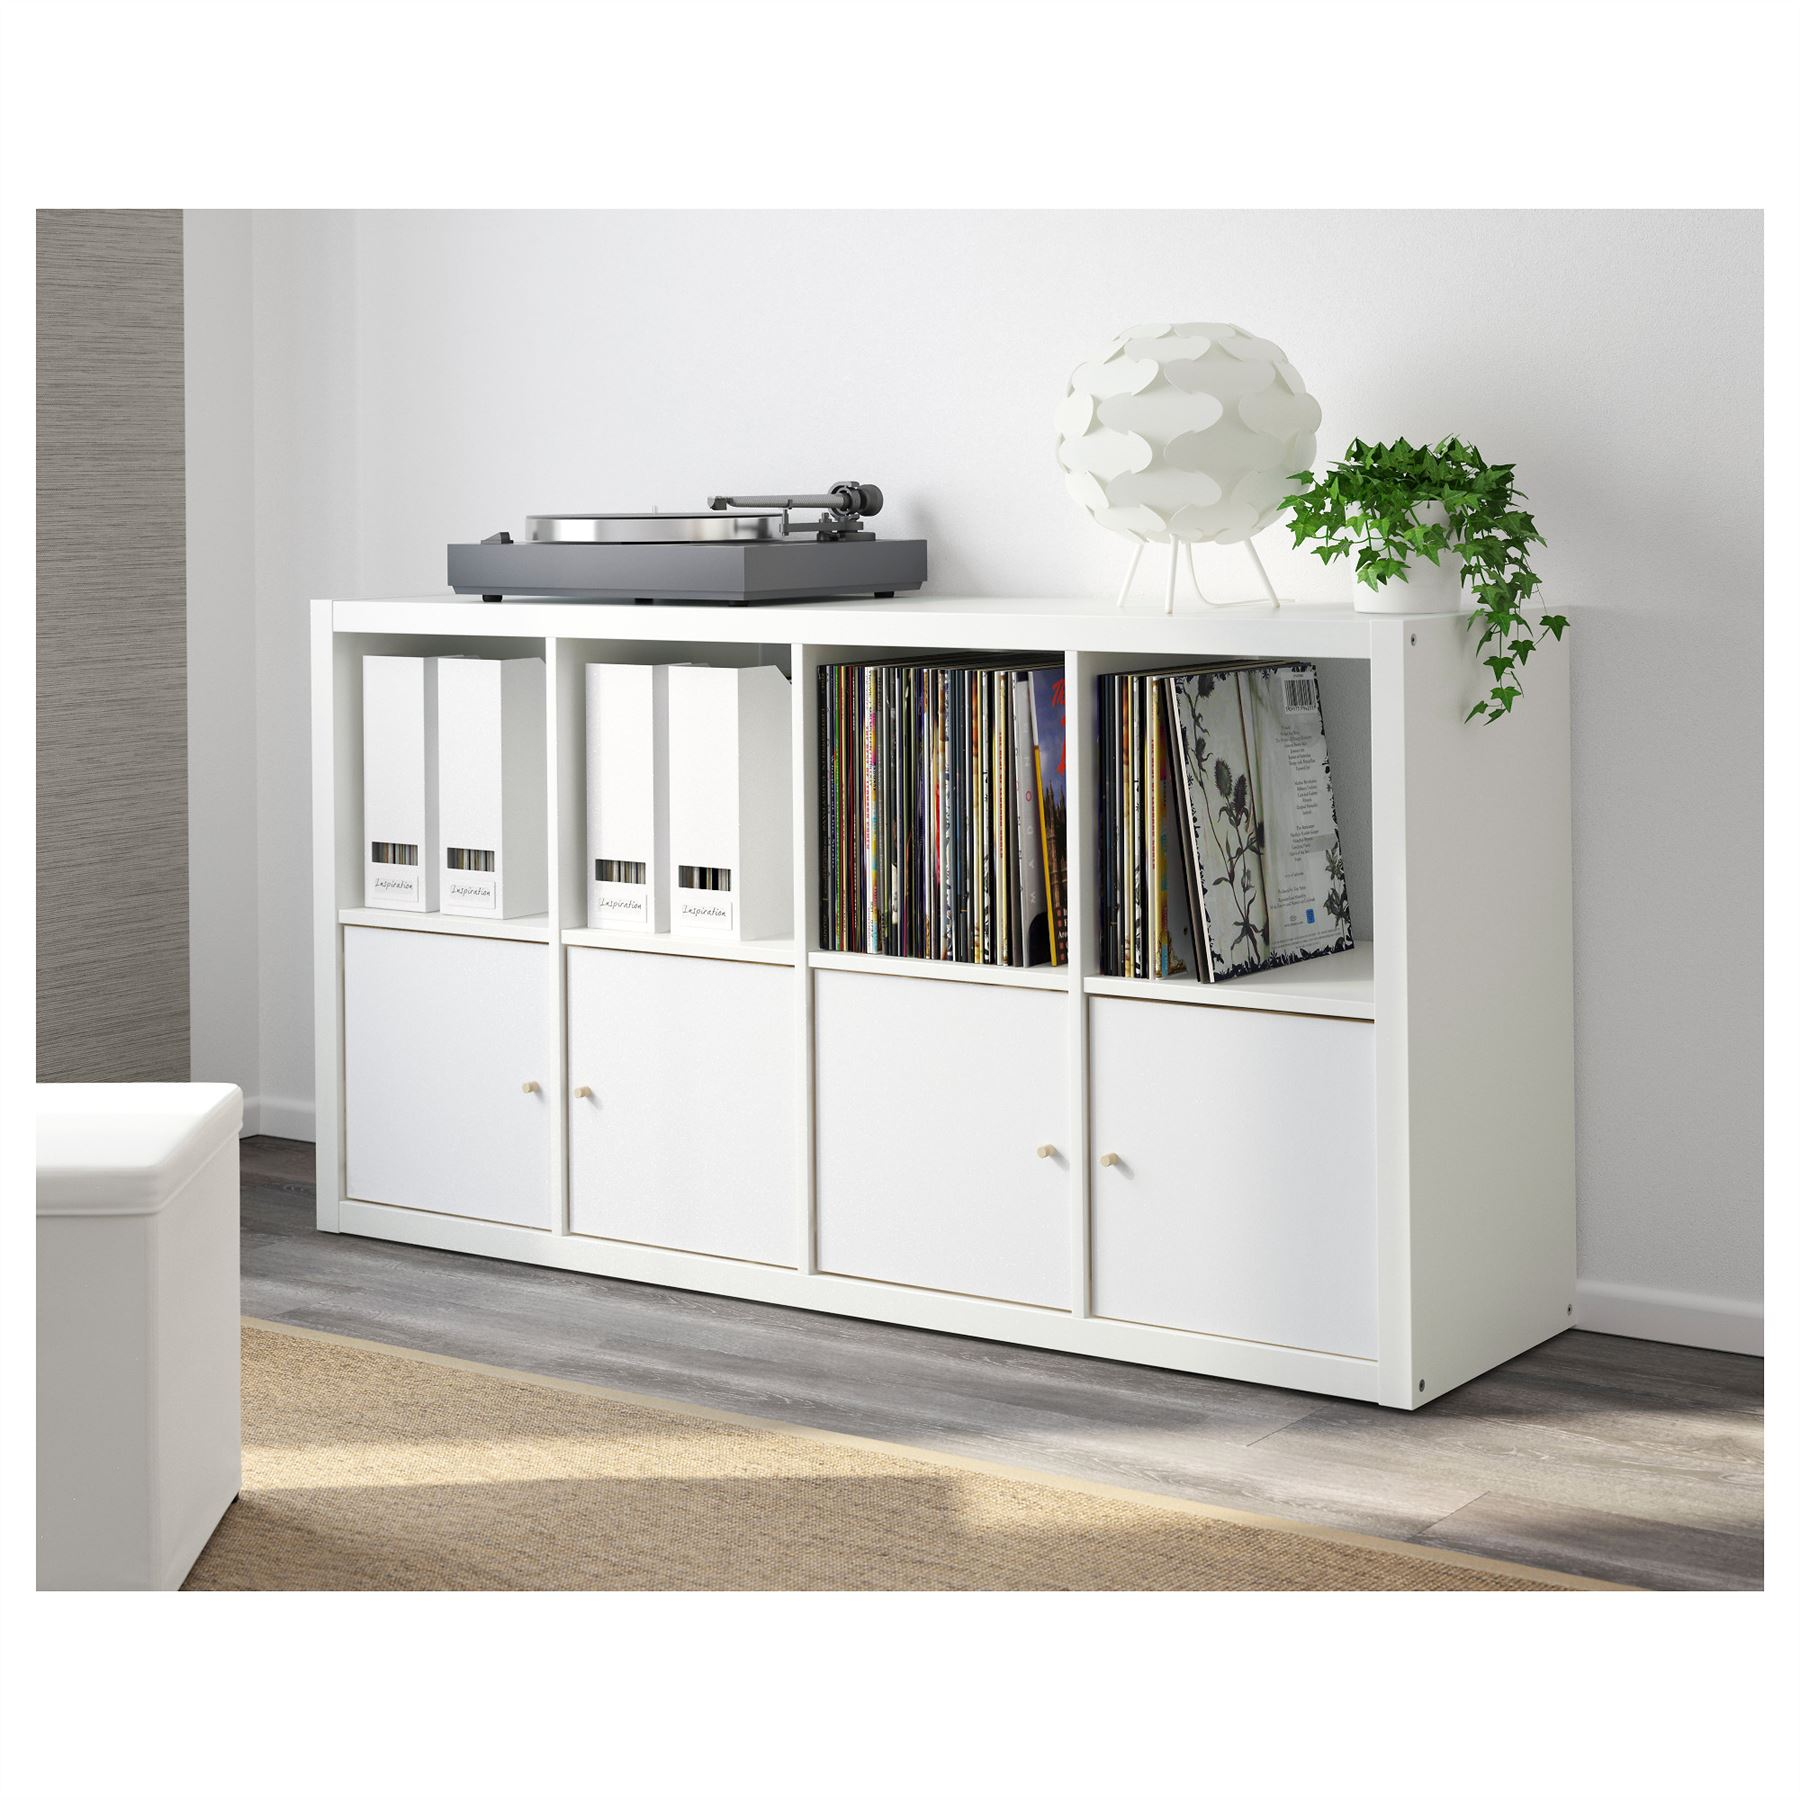 ikea kallax 8 cube storage bookcase rectangle shelving unit white. Black Bedroom Furniture Sets. Home Design Ideas